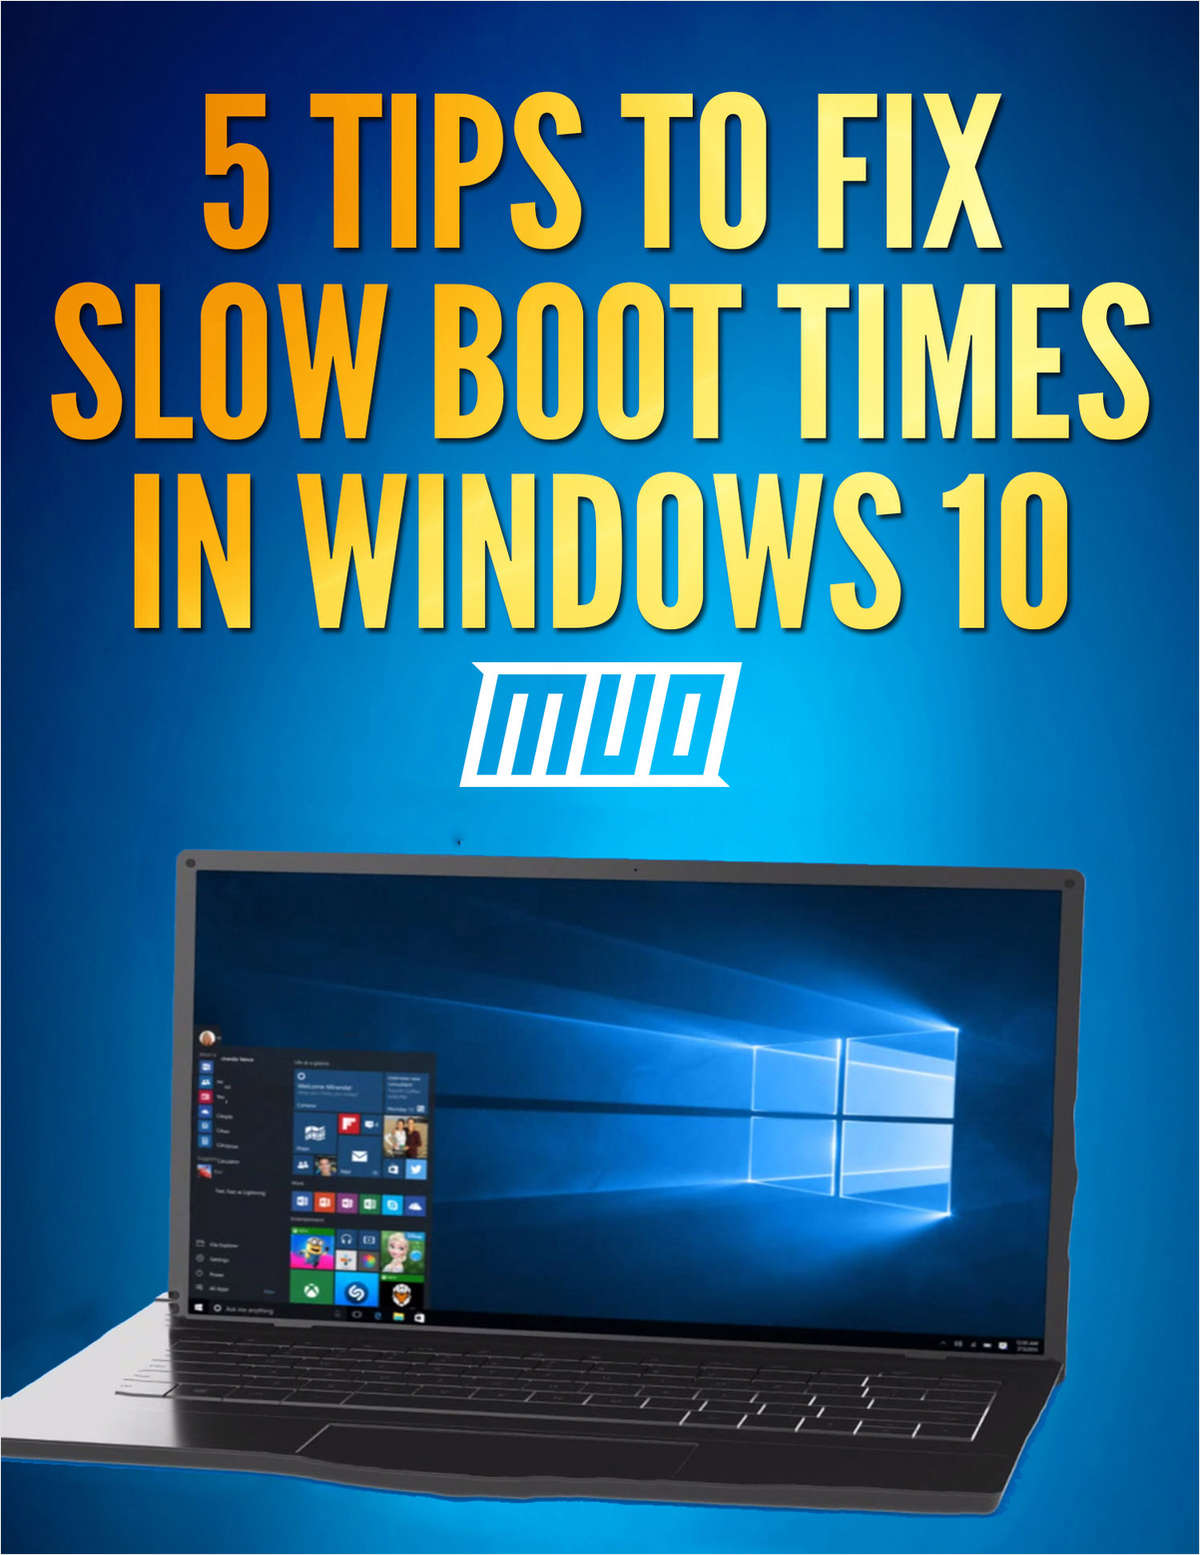 5 Tips to Fix Slow Boot Times in Windows 10